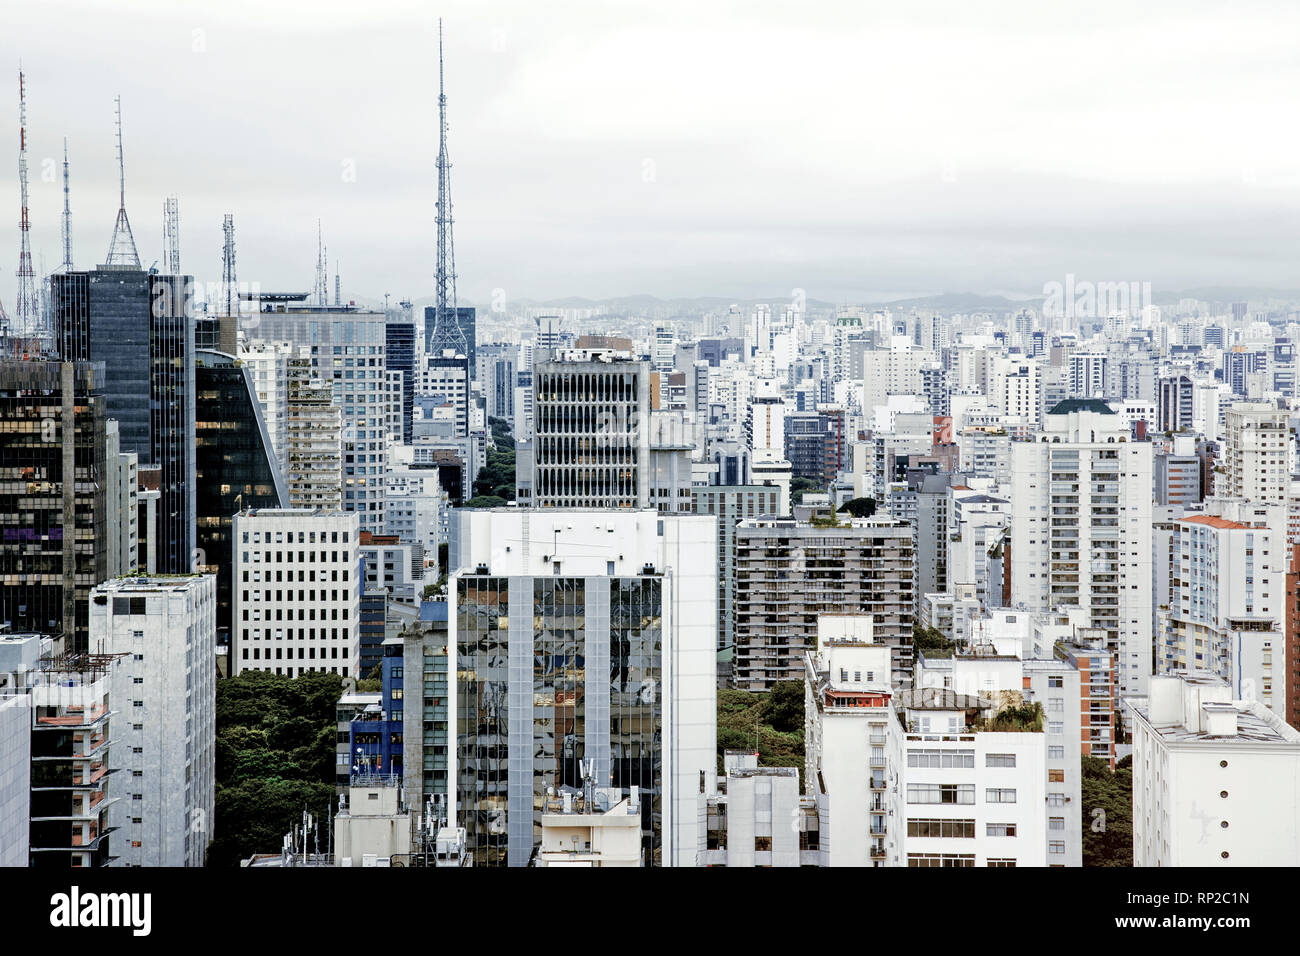 Daylight shot of the skyline of Central Sao Paulo, Brazil - Stock Image